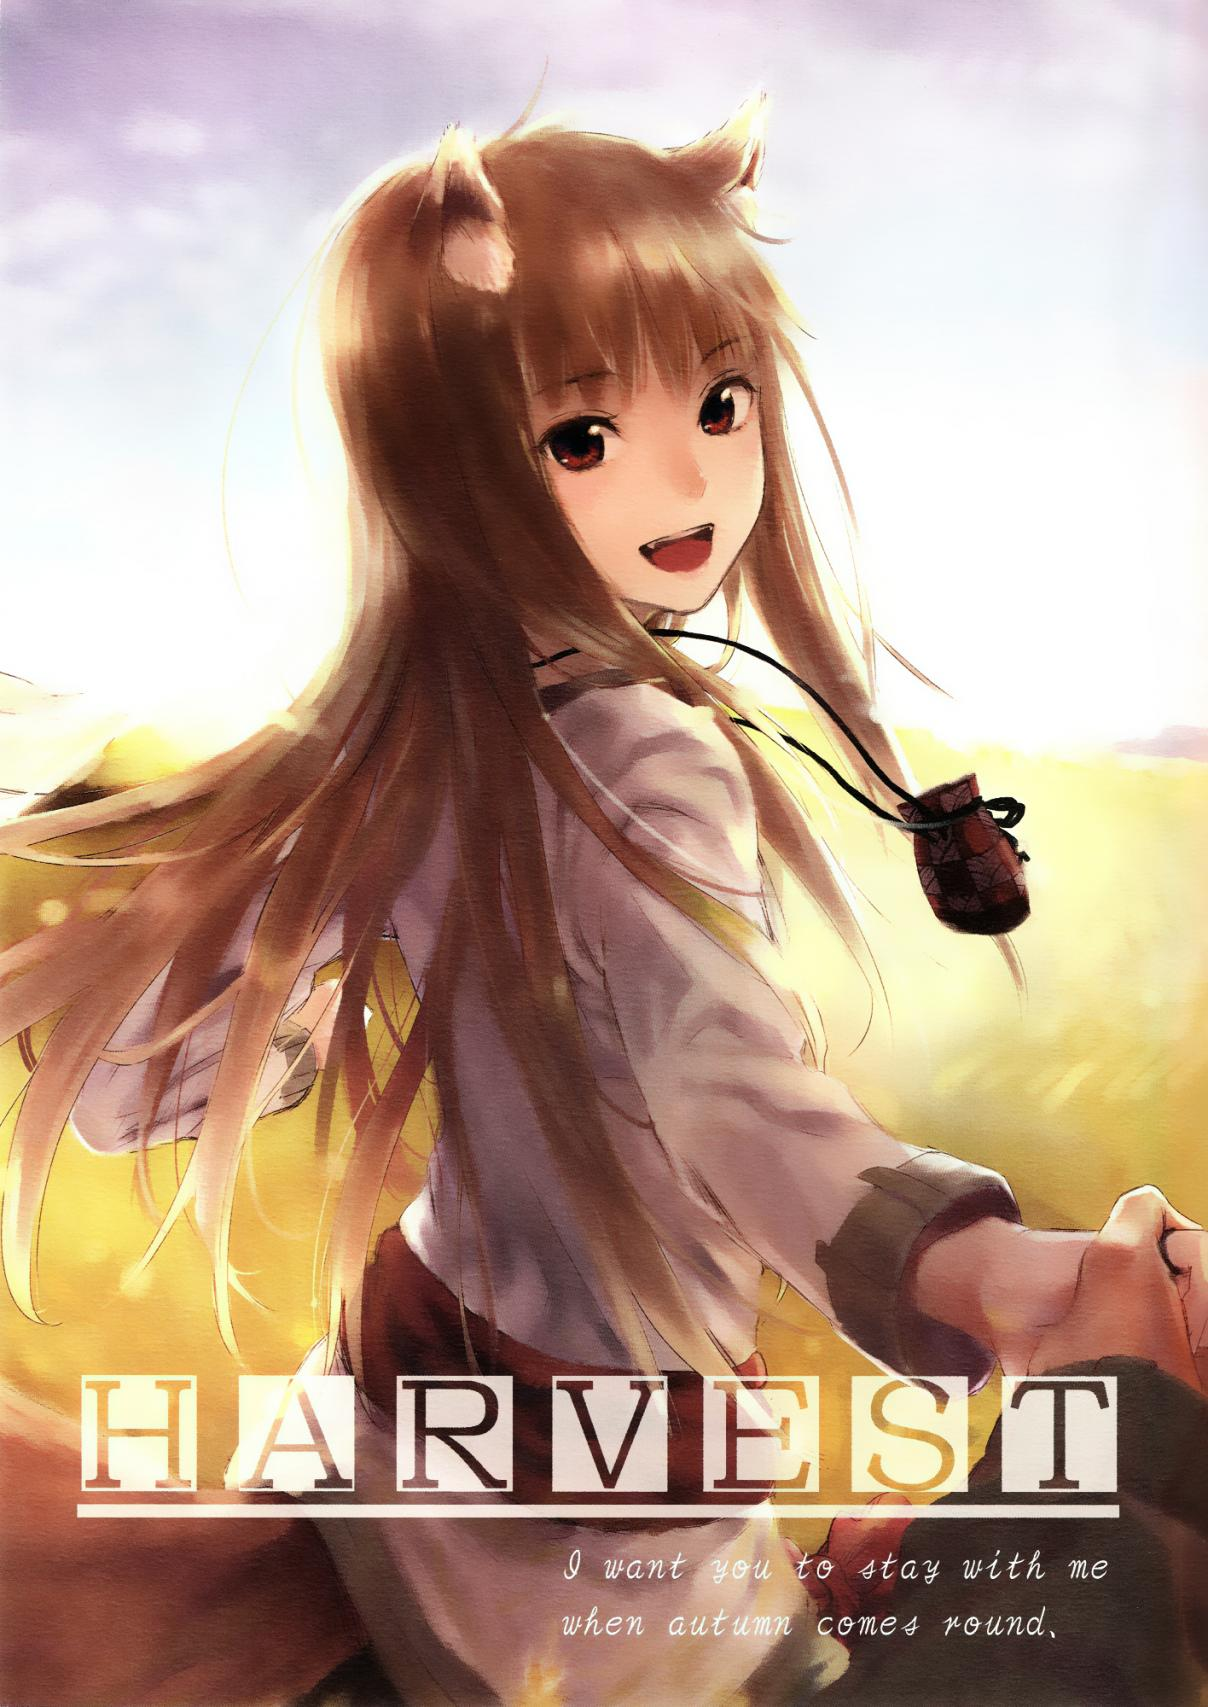 Spice and Wolf Harvest (Doujinshi) Oneshot